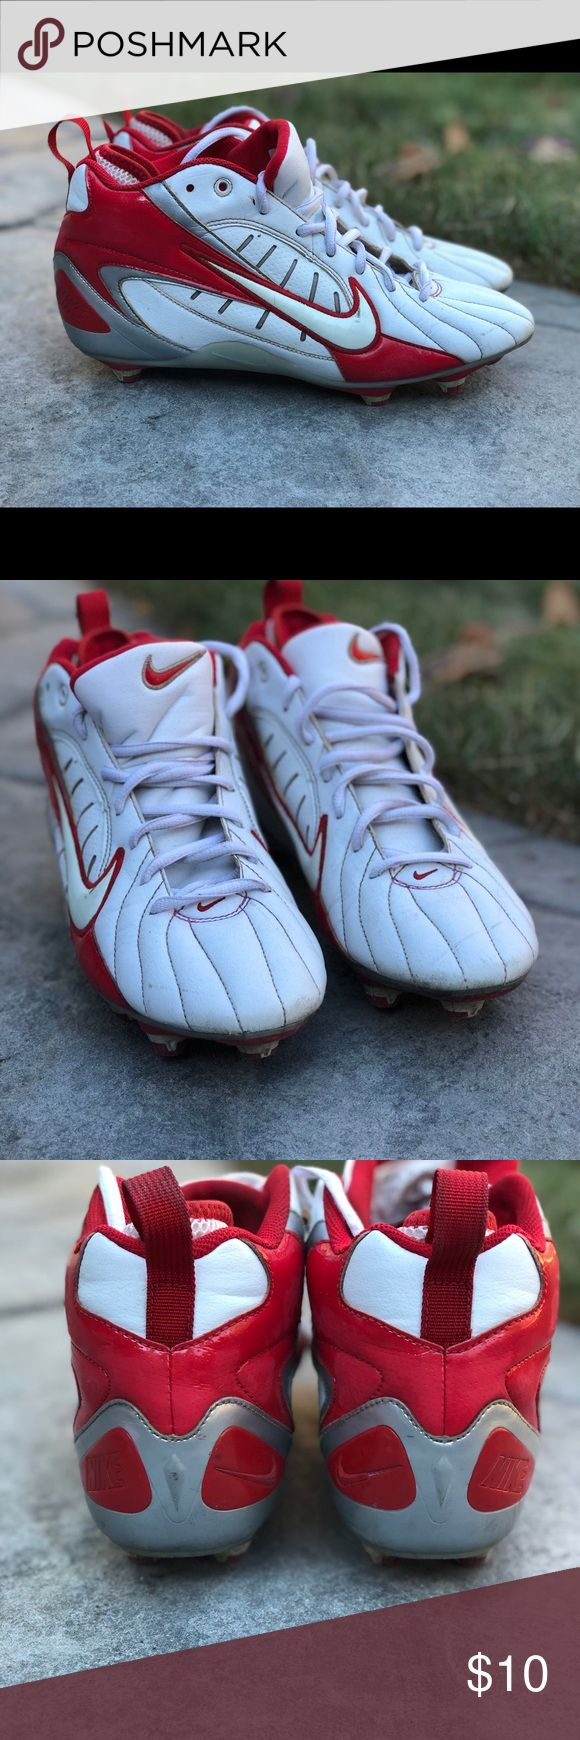 Football Cleats Youth/Men's Size 7.5 White Nike football cleats with red accents. Used for less than one season and in excellent condition! No tears or rips, significant scuffs or odor!! Nike Shoes Athletic Shoes